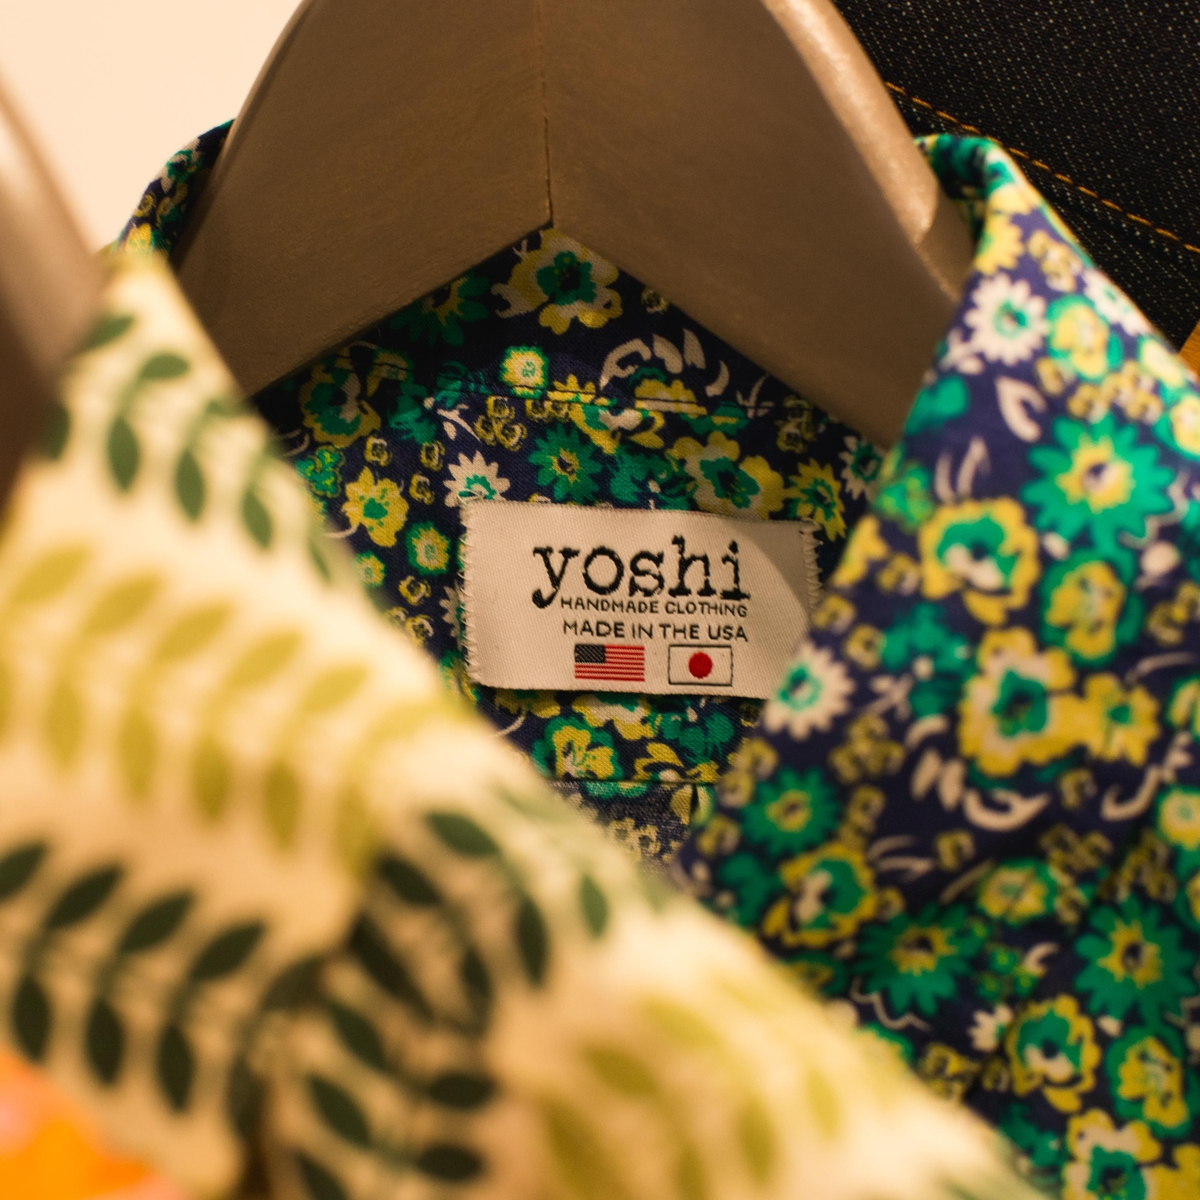 Yoshi Clothing shirt label detail